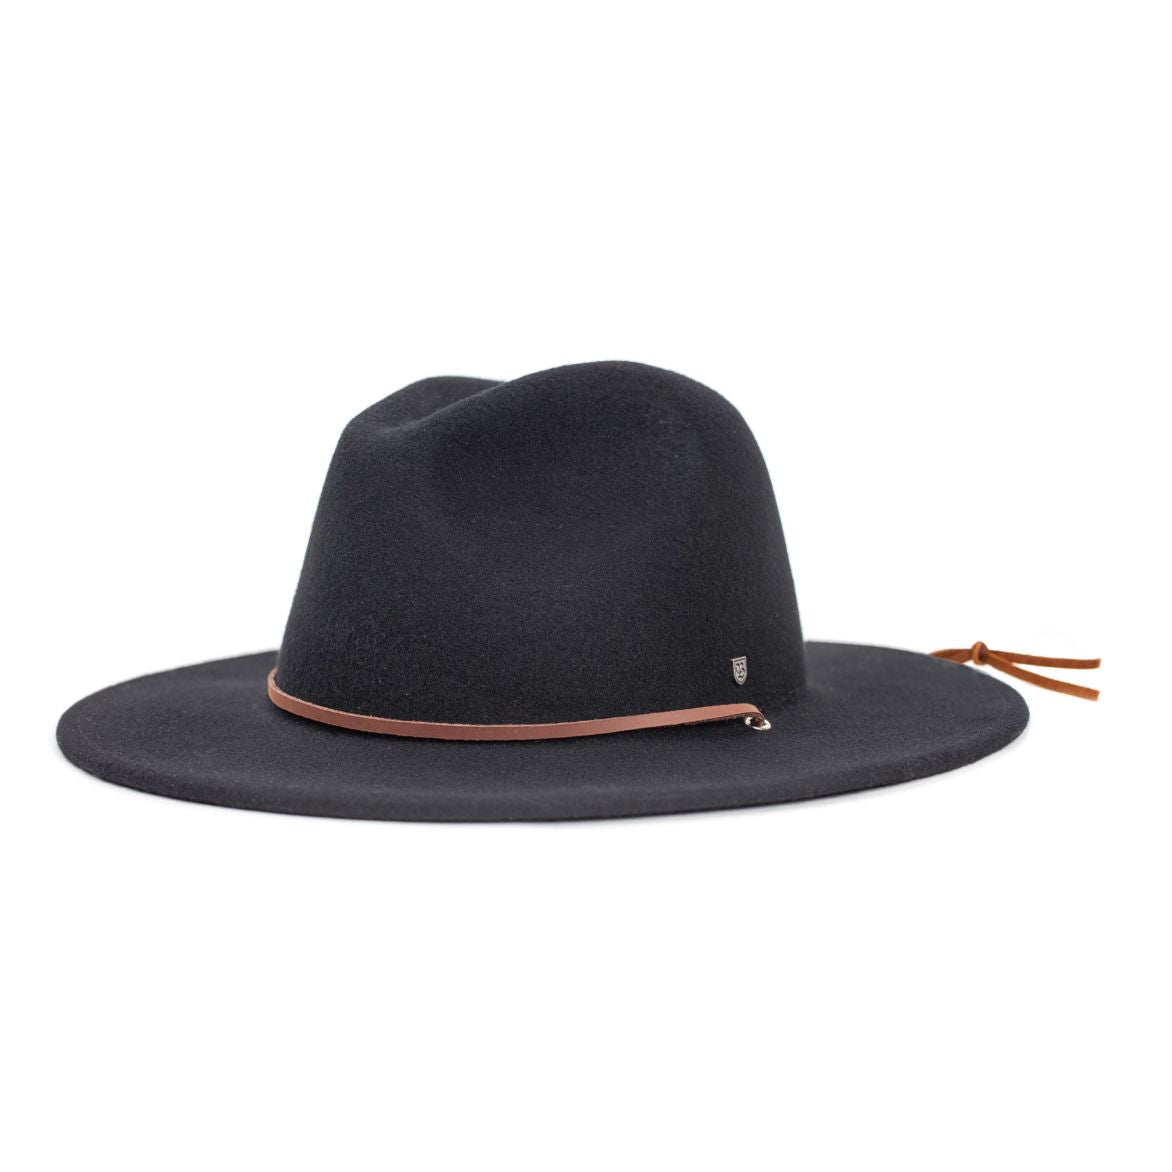 Field Hat in Black - Brixton